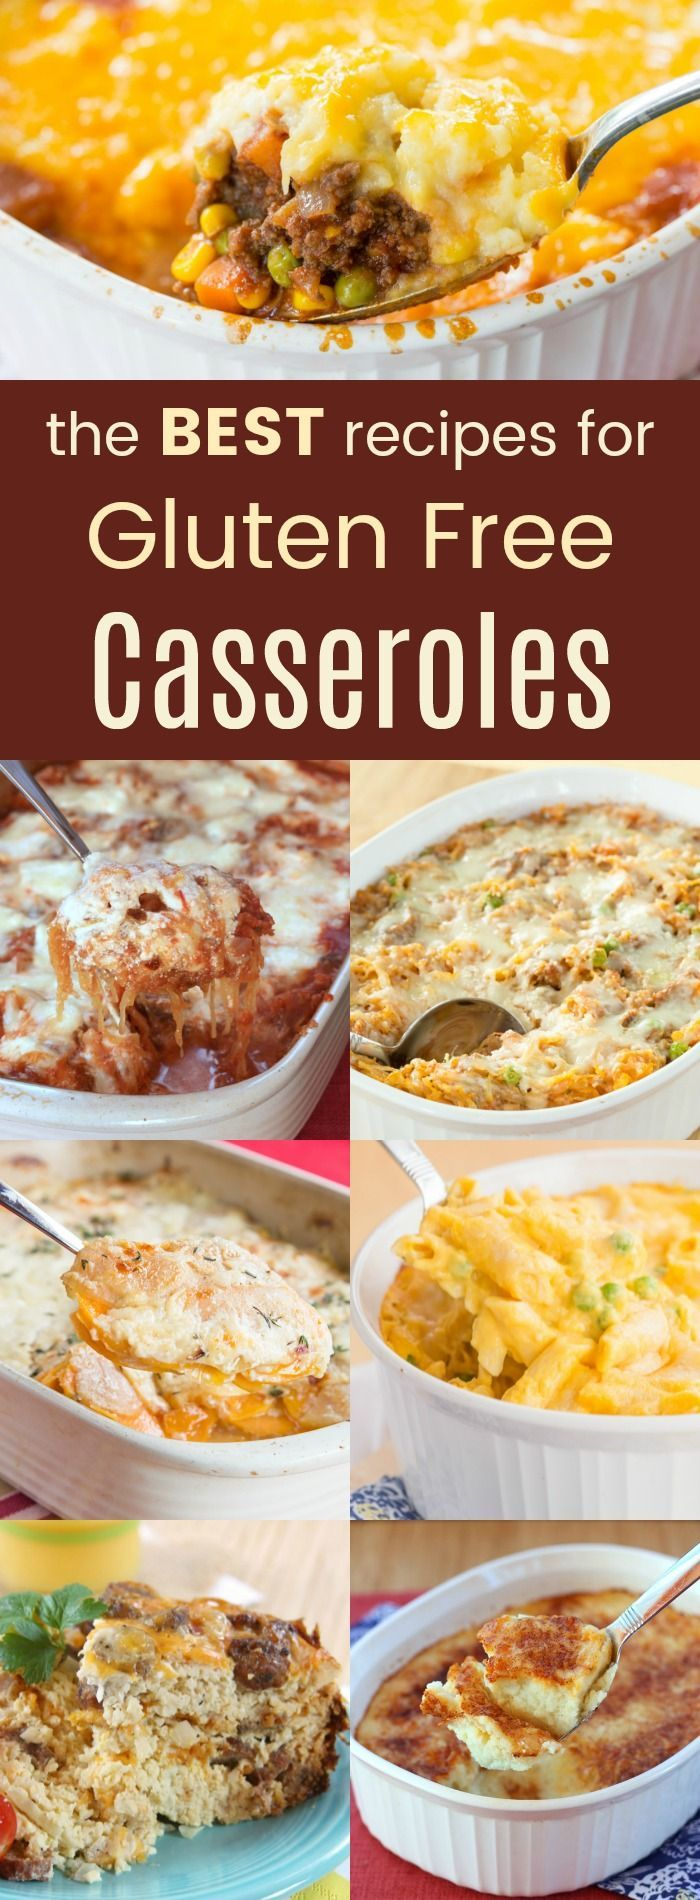 The Best Gluten-Free Casserole Recipes - main dishes and side dishes, these casseroles are the easy comfort food you crave. #glutenfree #casserole